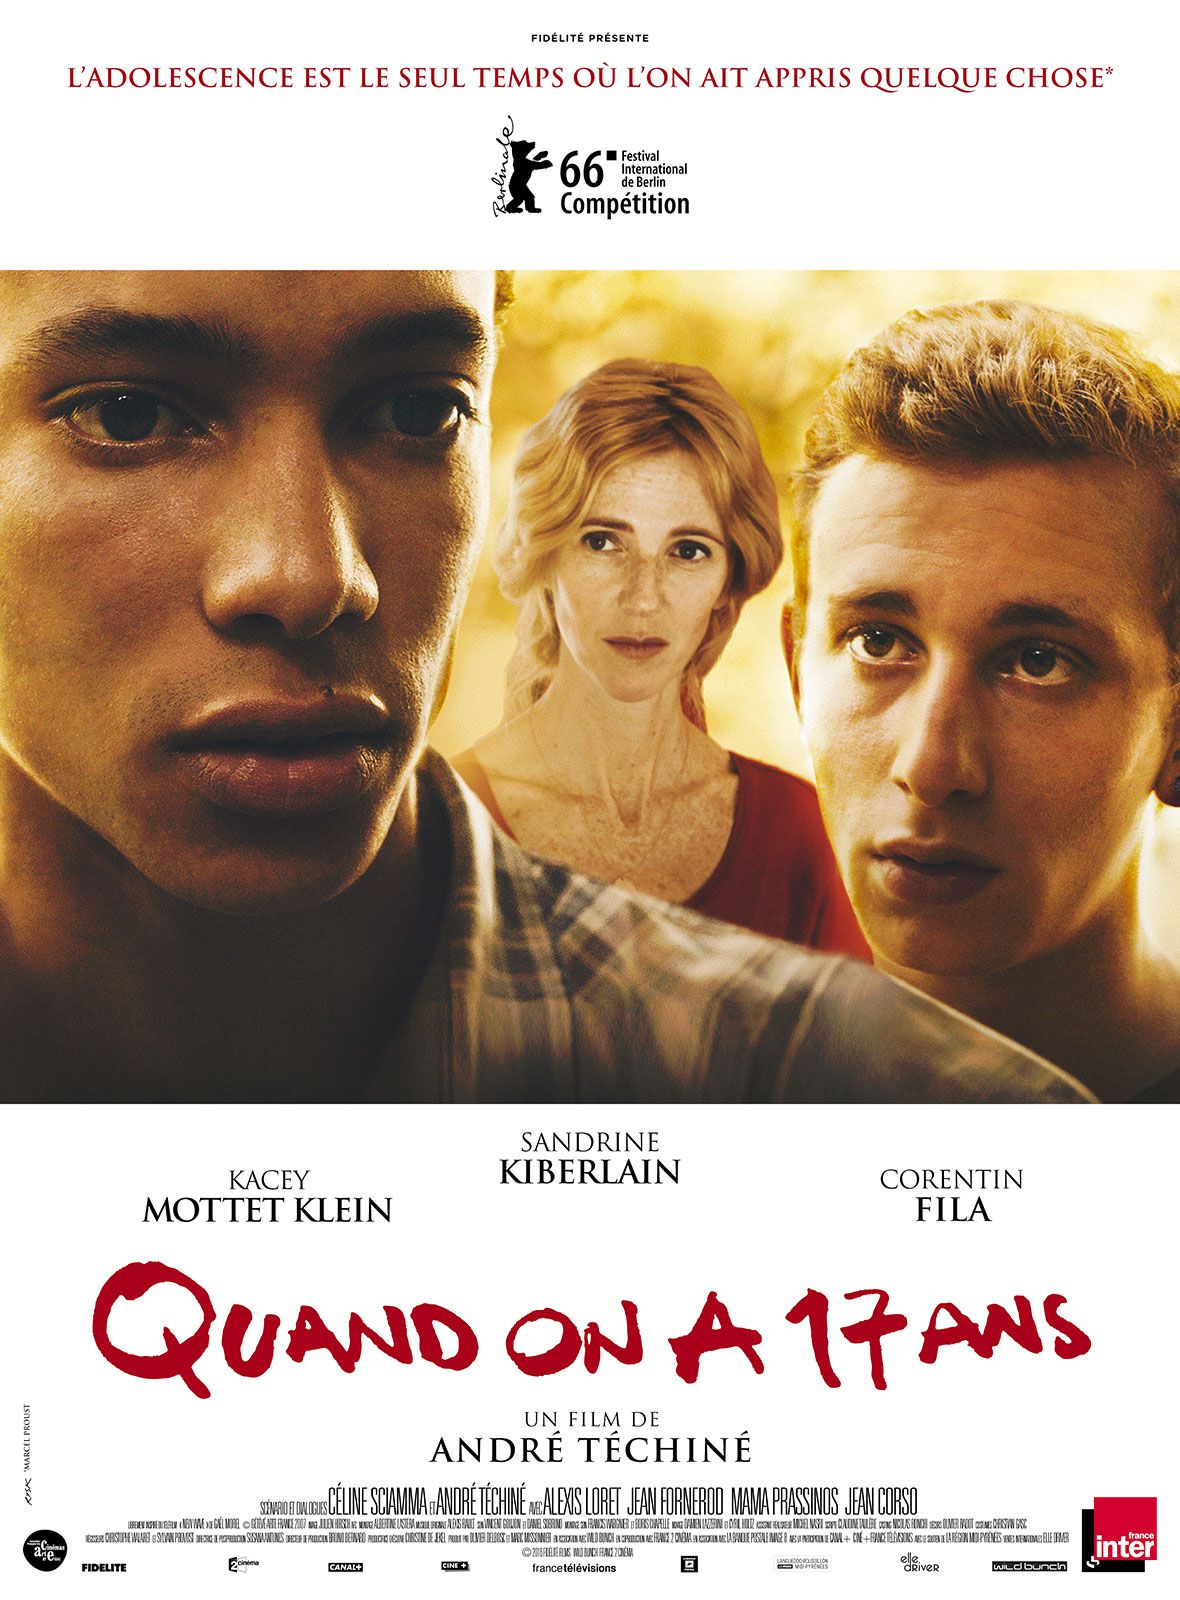 Quand on a 17 ans - Film (2016)